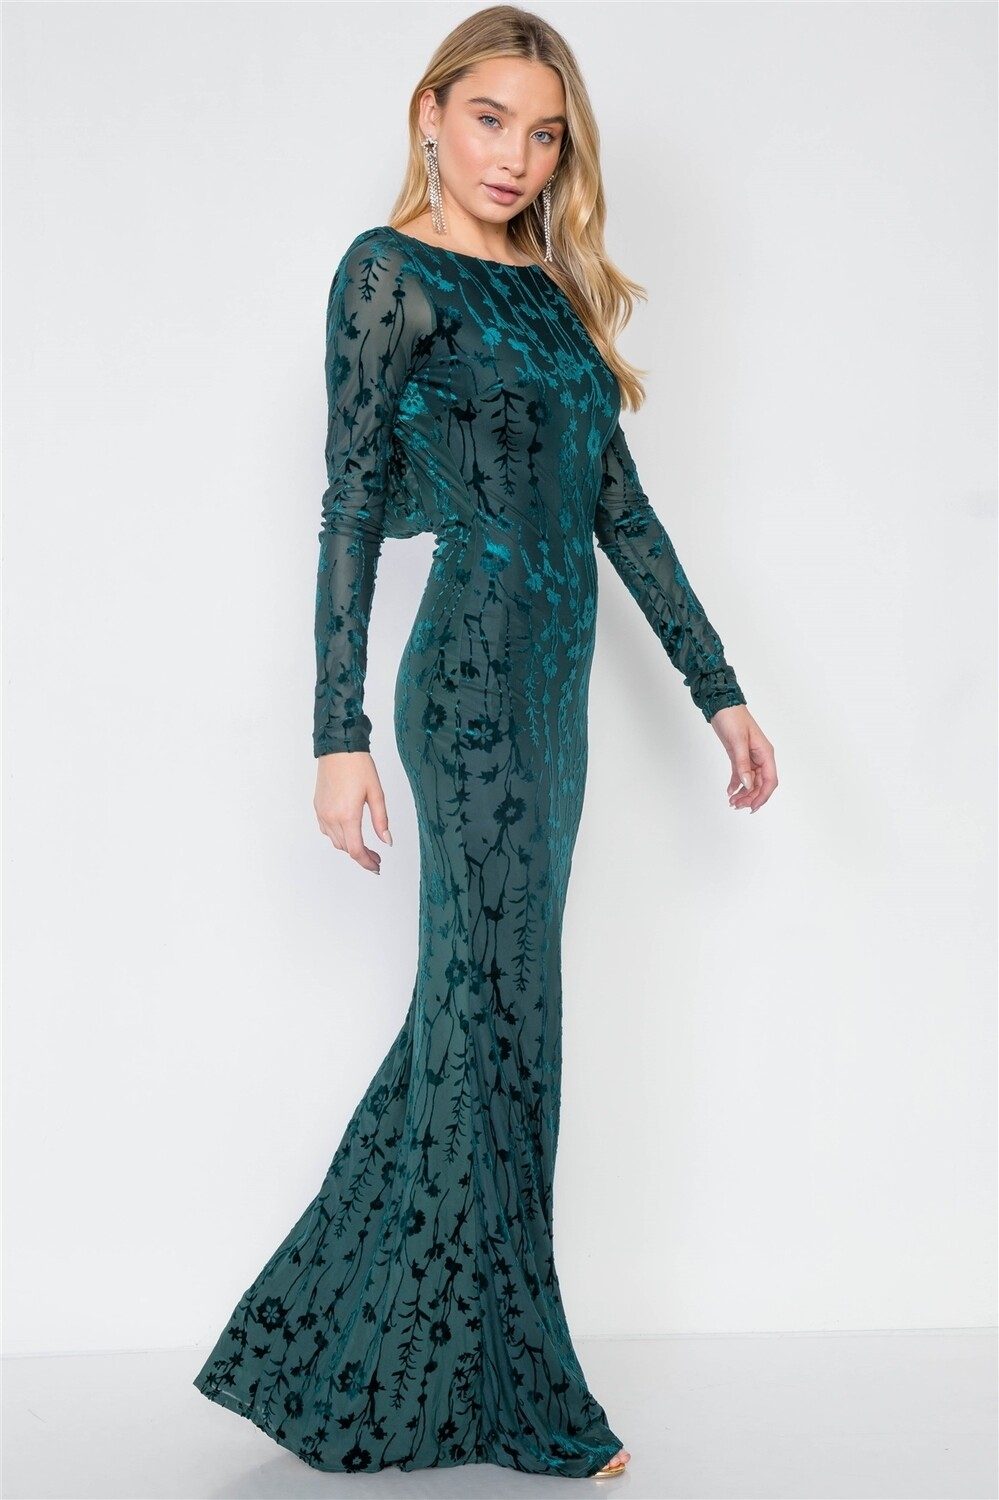 Tall Emerald Green Floral Print Backless Evening Maxi Dress